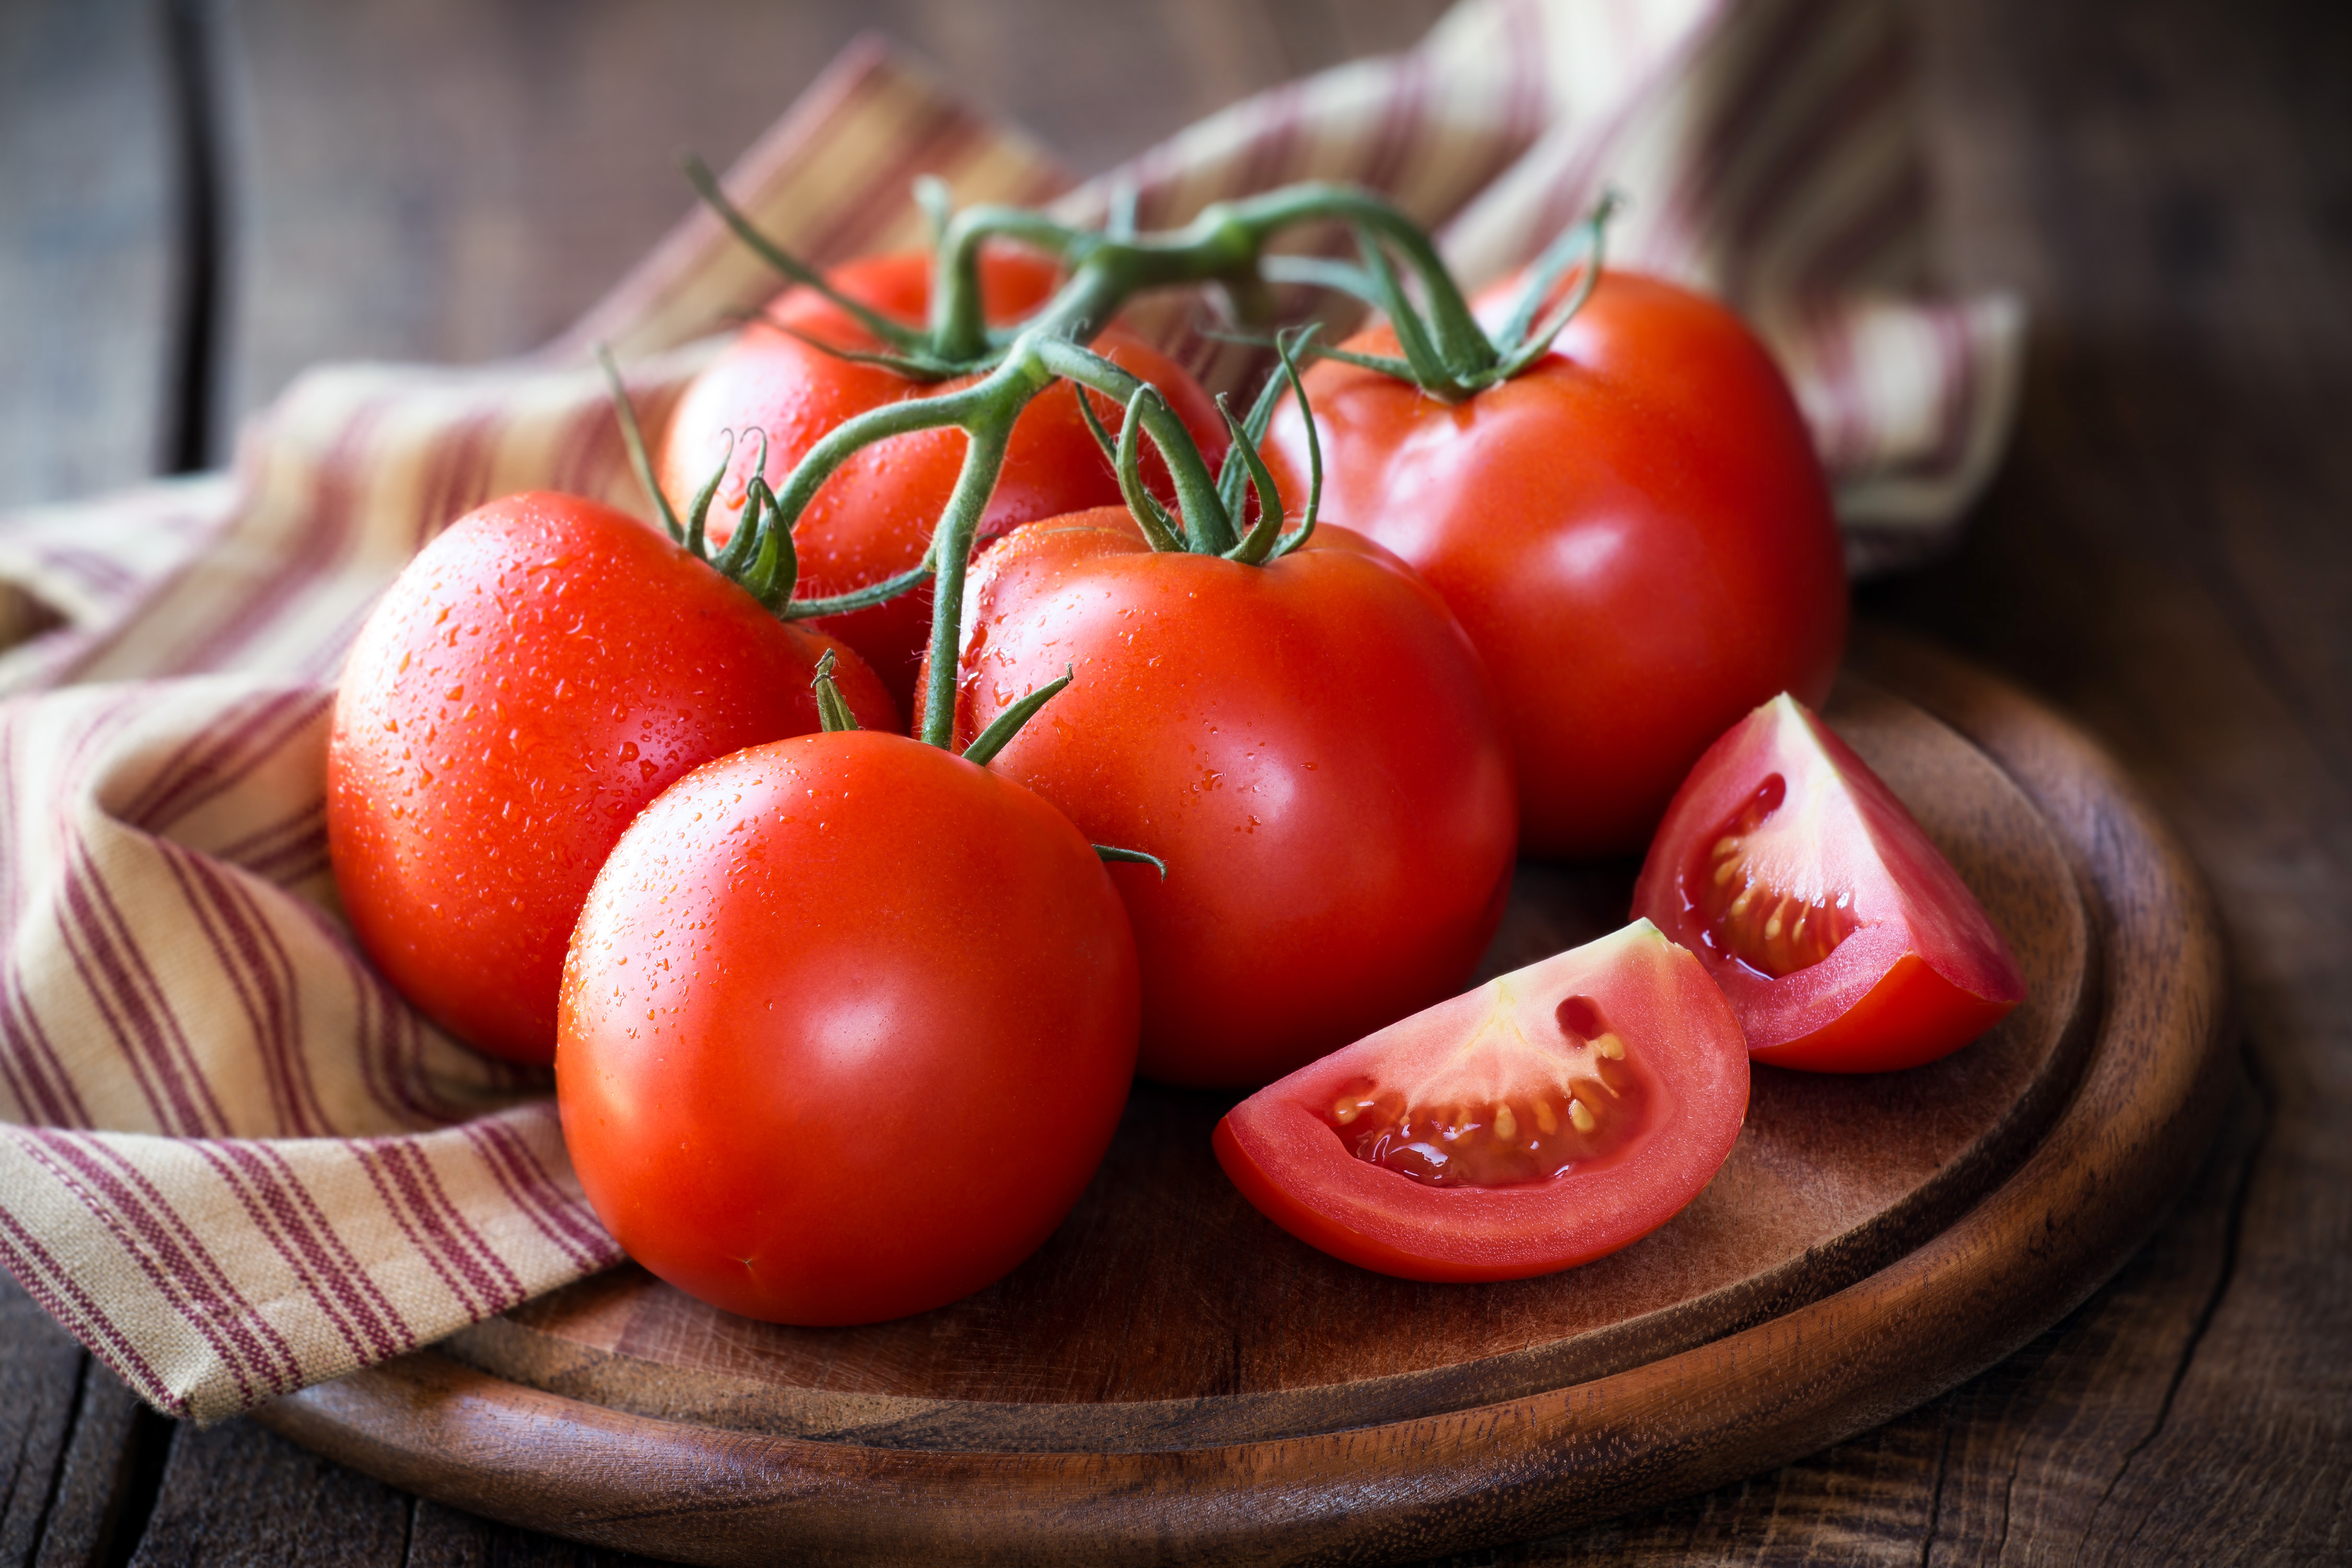 How Long Before a Plant Starts to Grow Tomatoes? | Home Guides | SF Gate